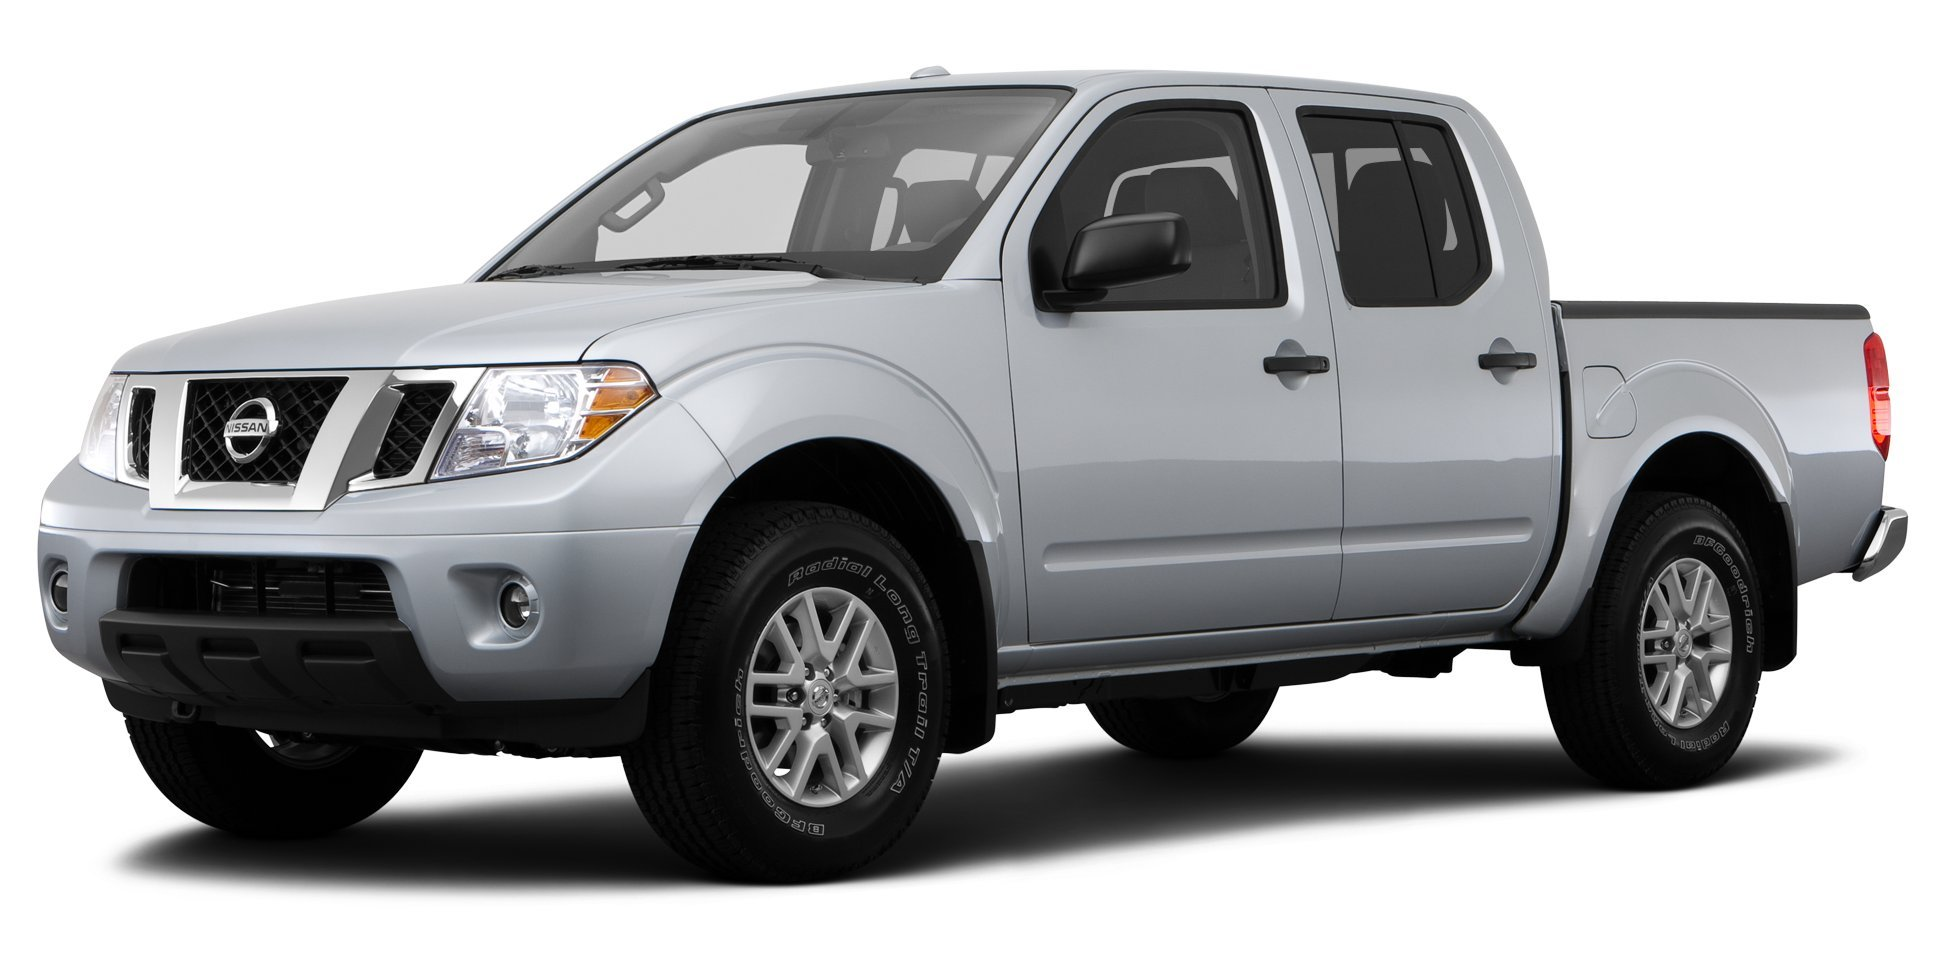 2014 nissan frontier reviews images and. Black Bedroom Furniture Sets. Home Design Ideas